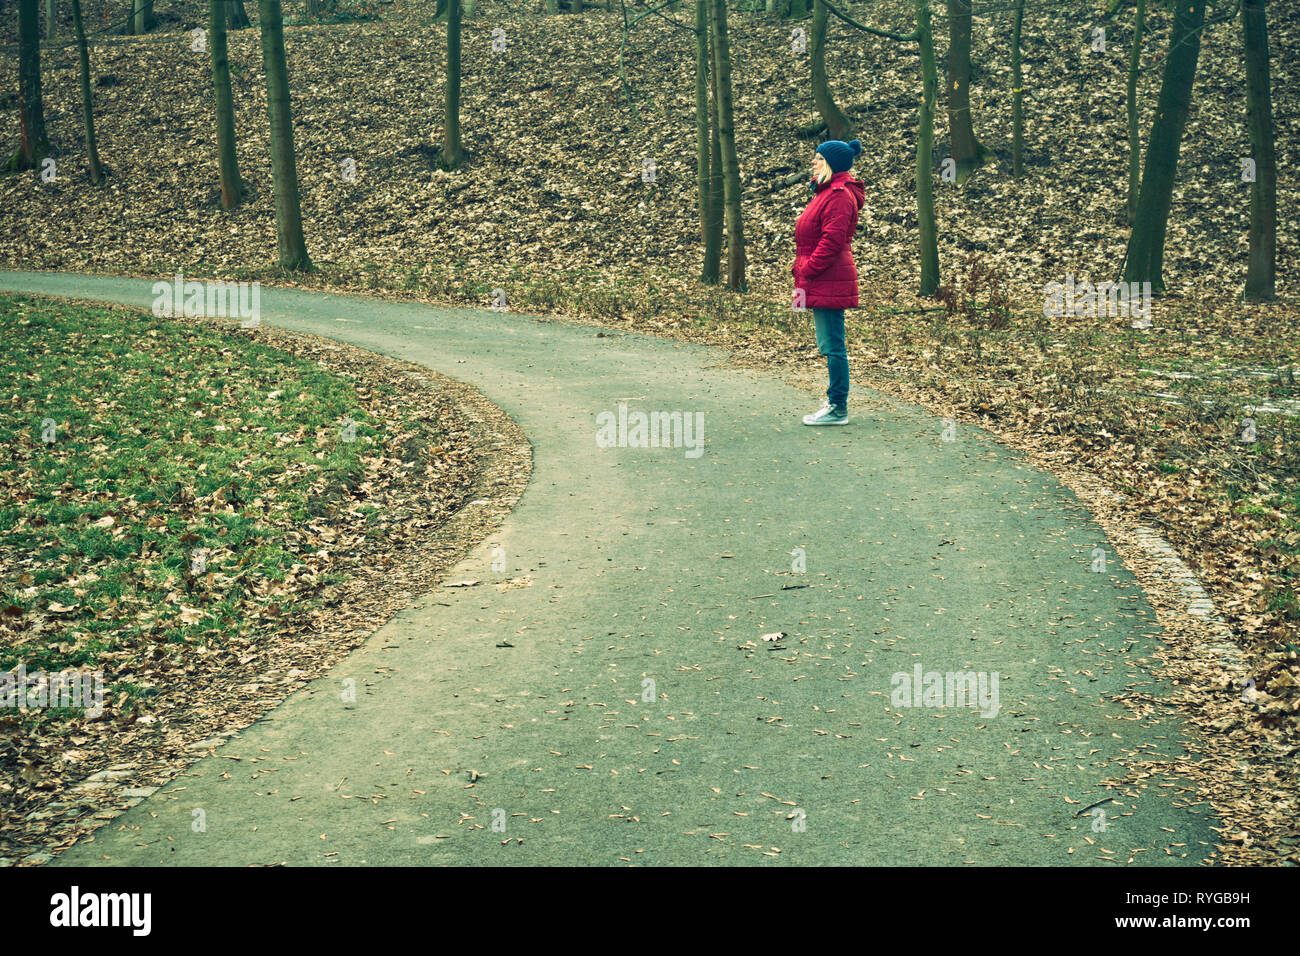 woman in red coat and blue knit hat standing on a road in nature, looking ahead, optimistic about the future - Stock Image